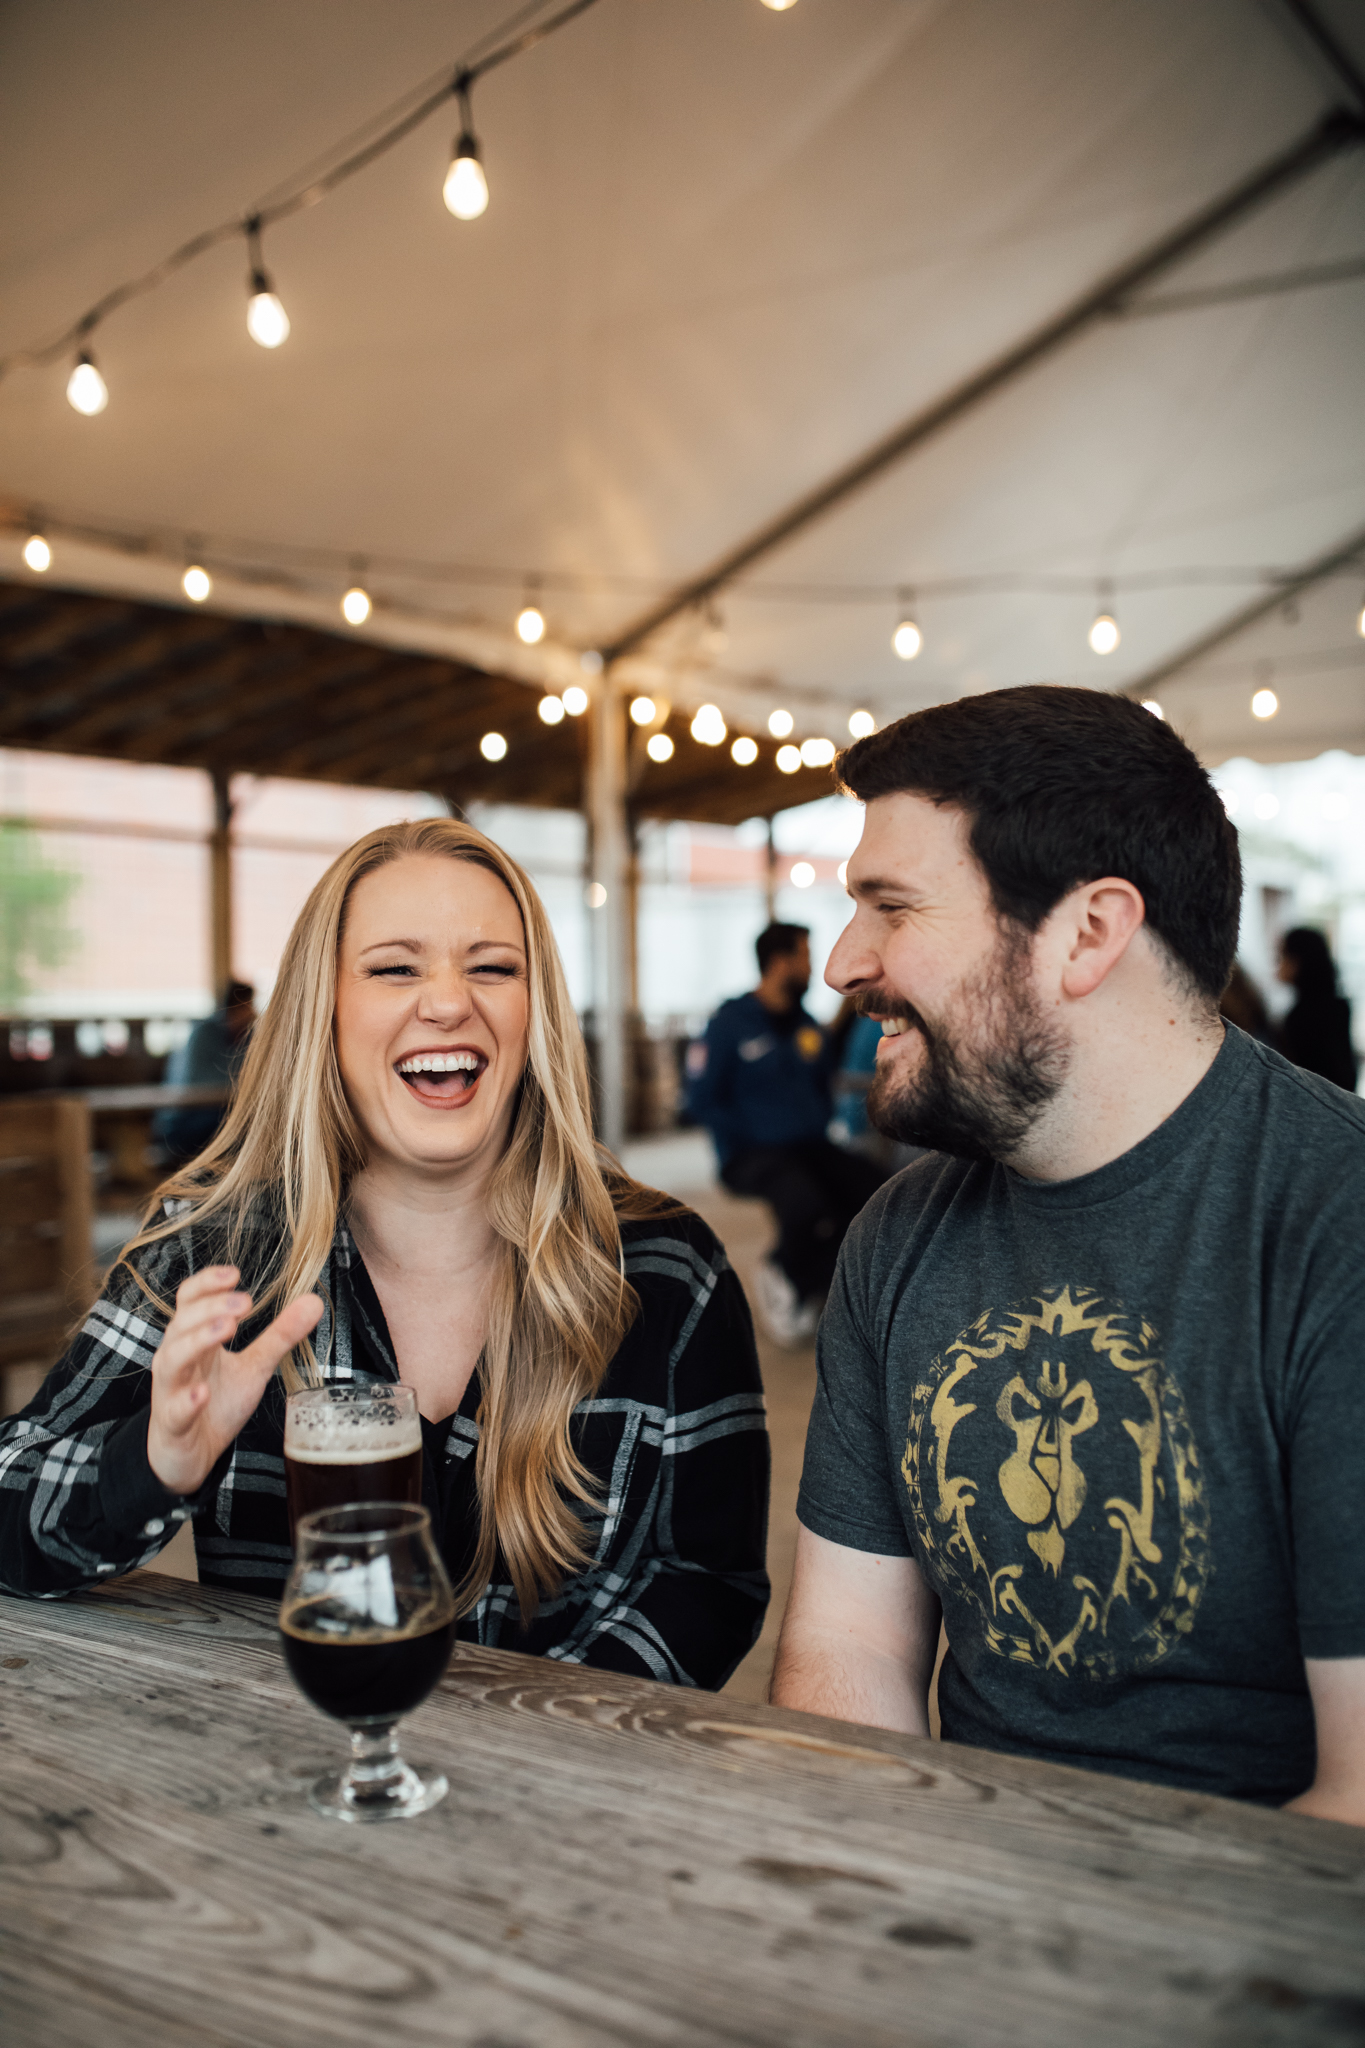 wiseacre-brewing-wedding-photographer-the-warmth-around-you-cassie-cook-photography (2 of 64).jpg